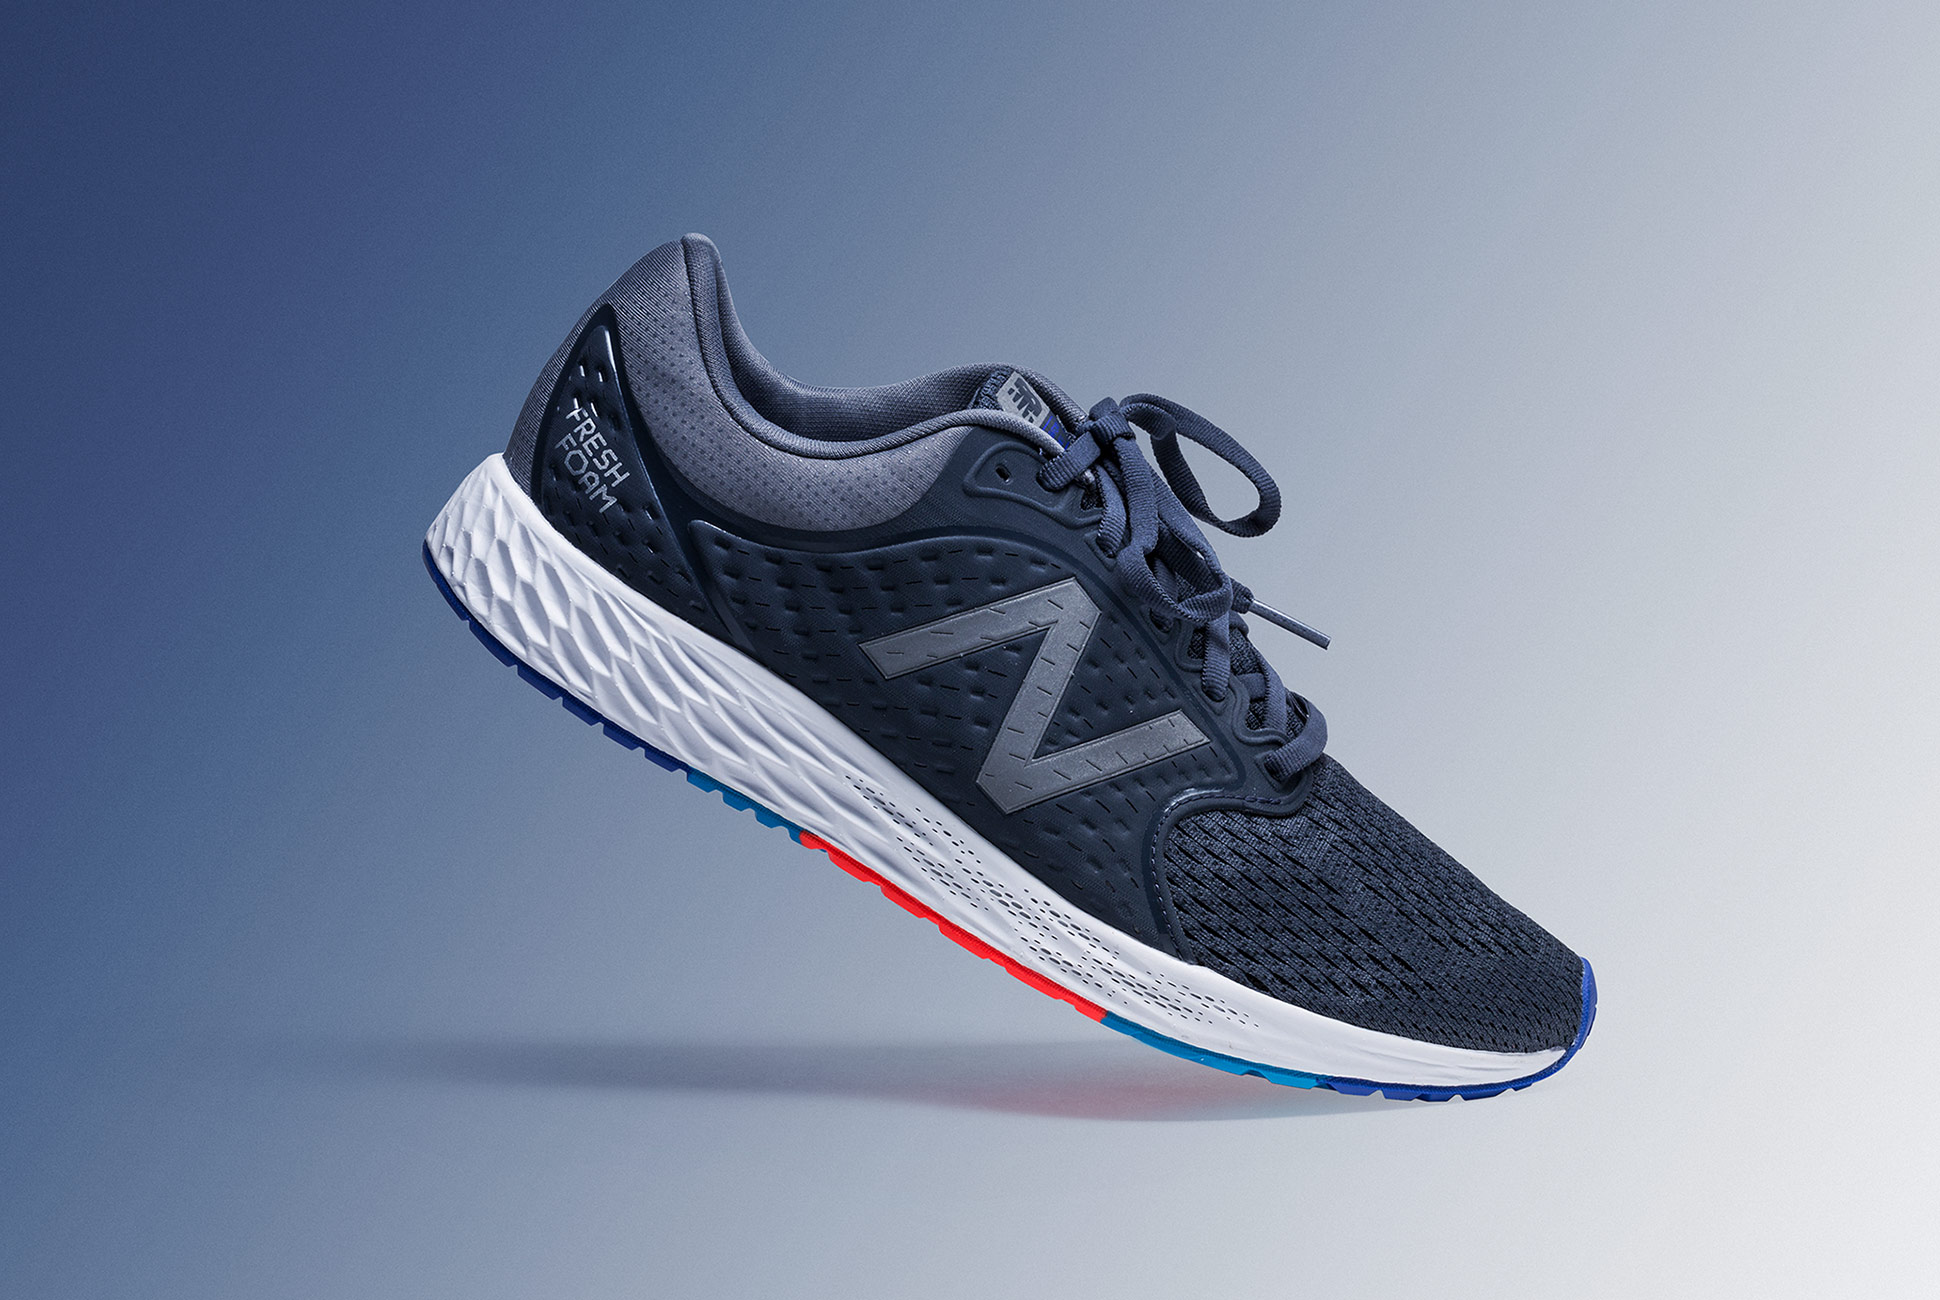 Best New Balance Running Shoes Reviewed & Rated in 2019